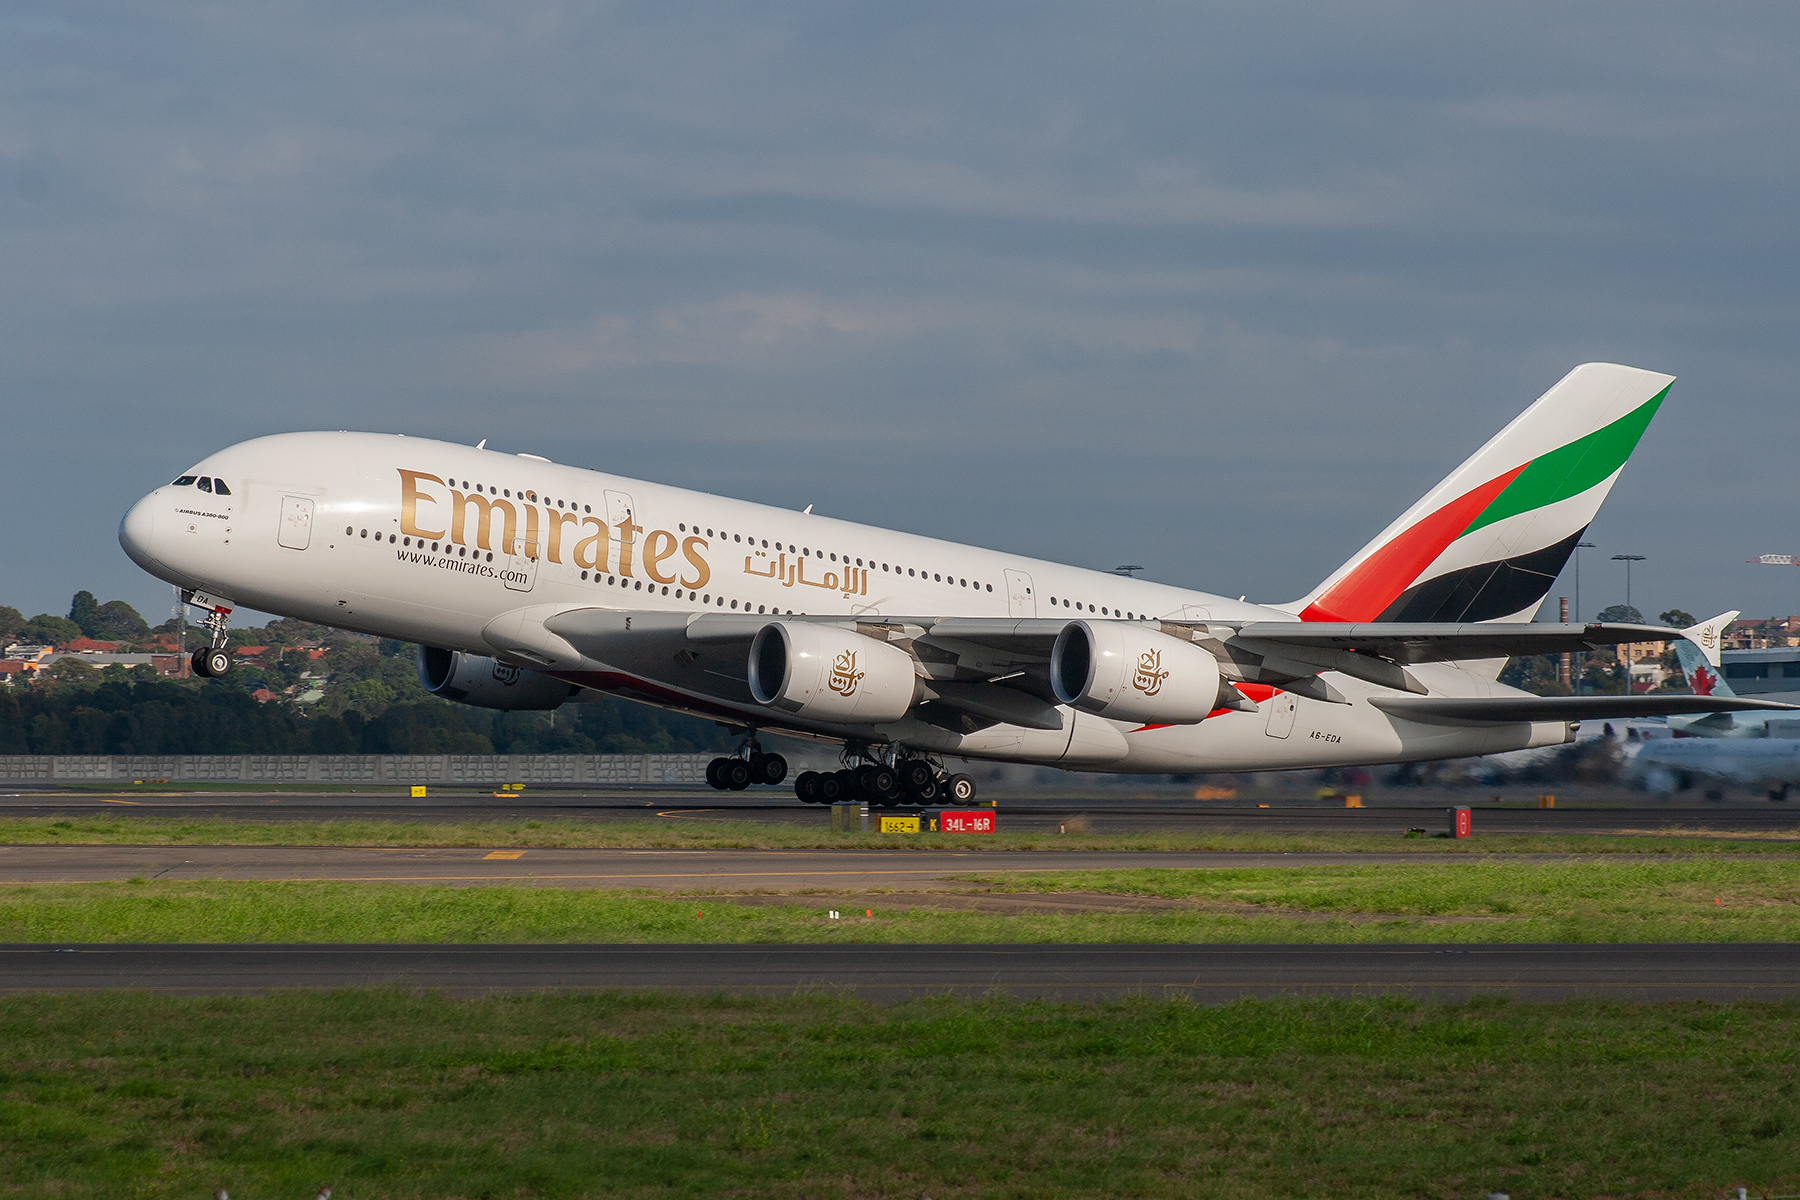 Emirates Airlines Airbus A380-800 A6-EDA at Kingsford Smith